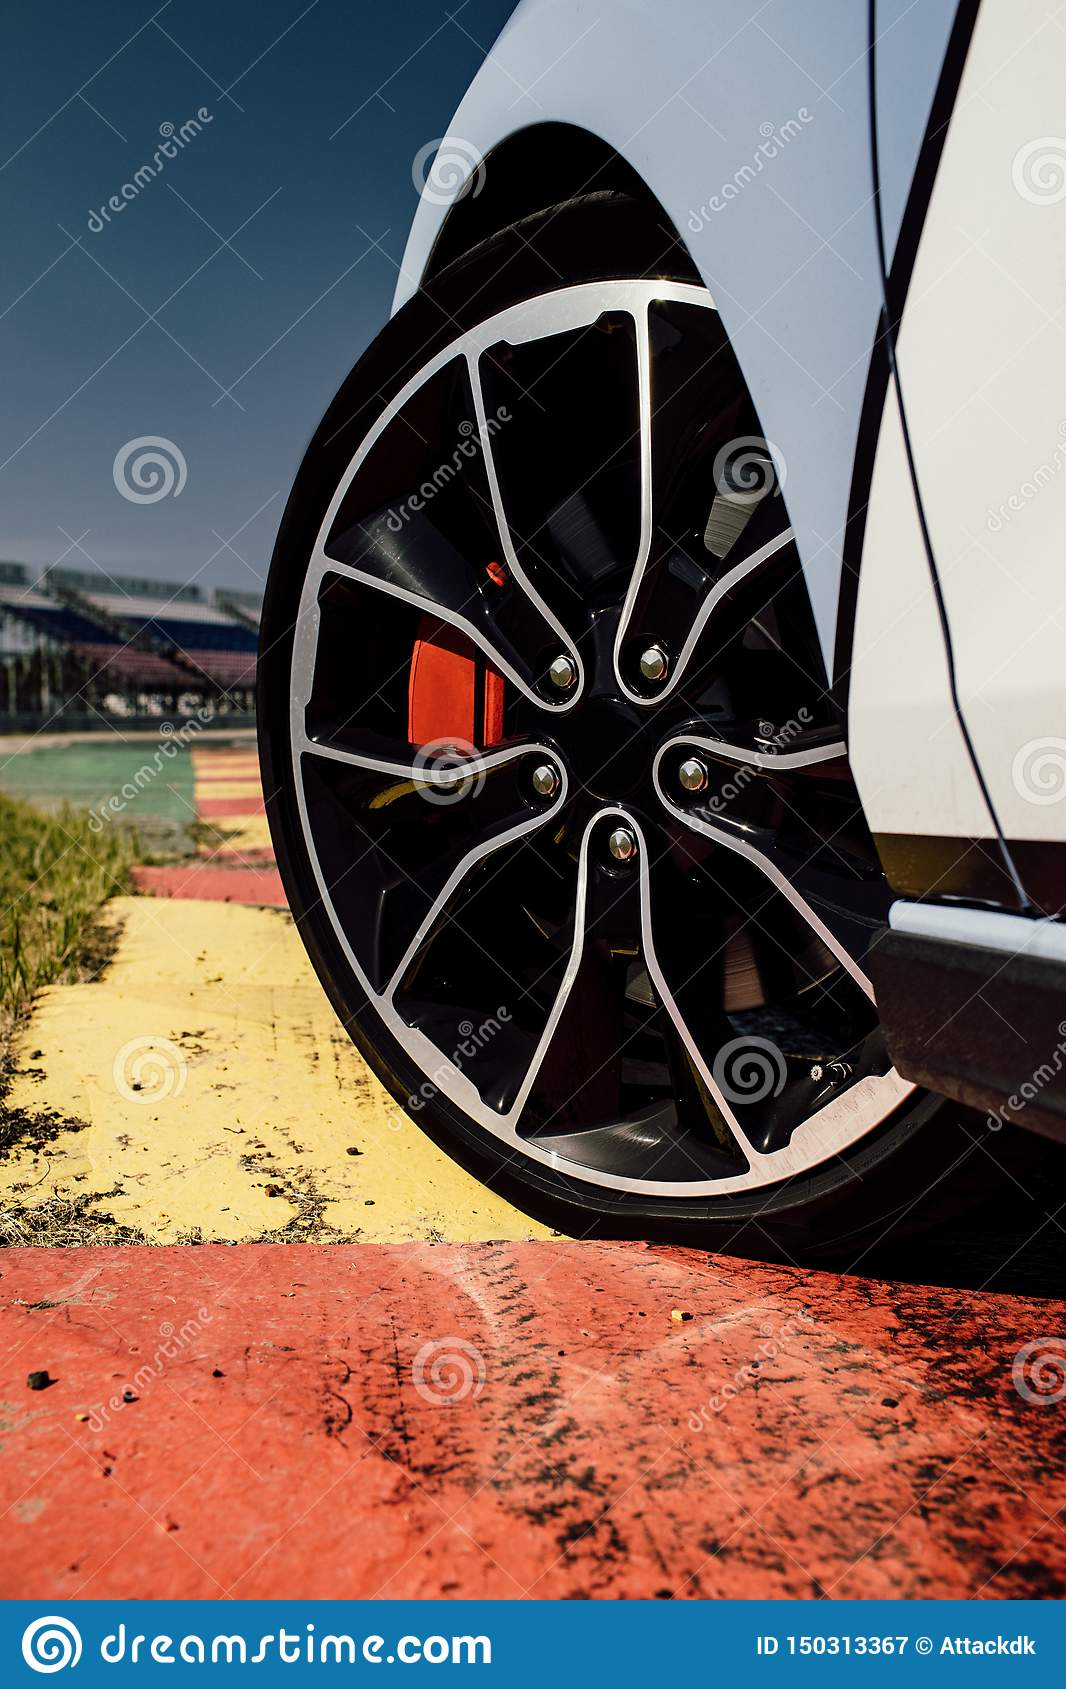 The beautiful wheel of a sport car, with the asphalt, in a race track. sport car on track